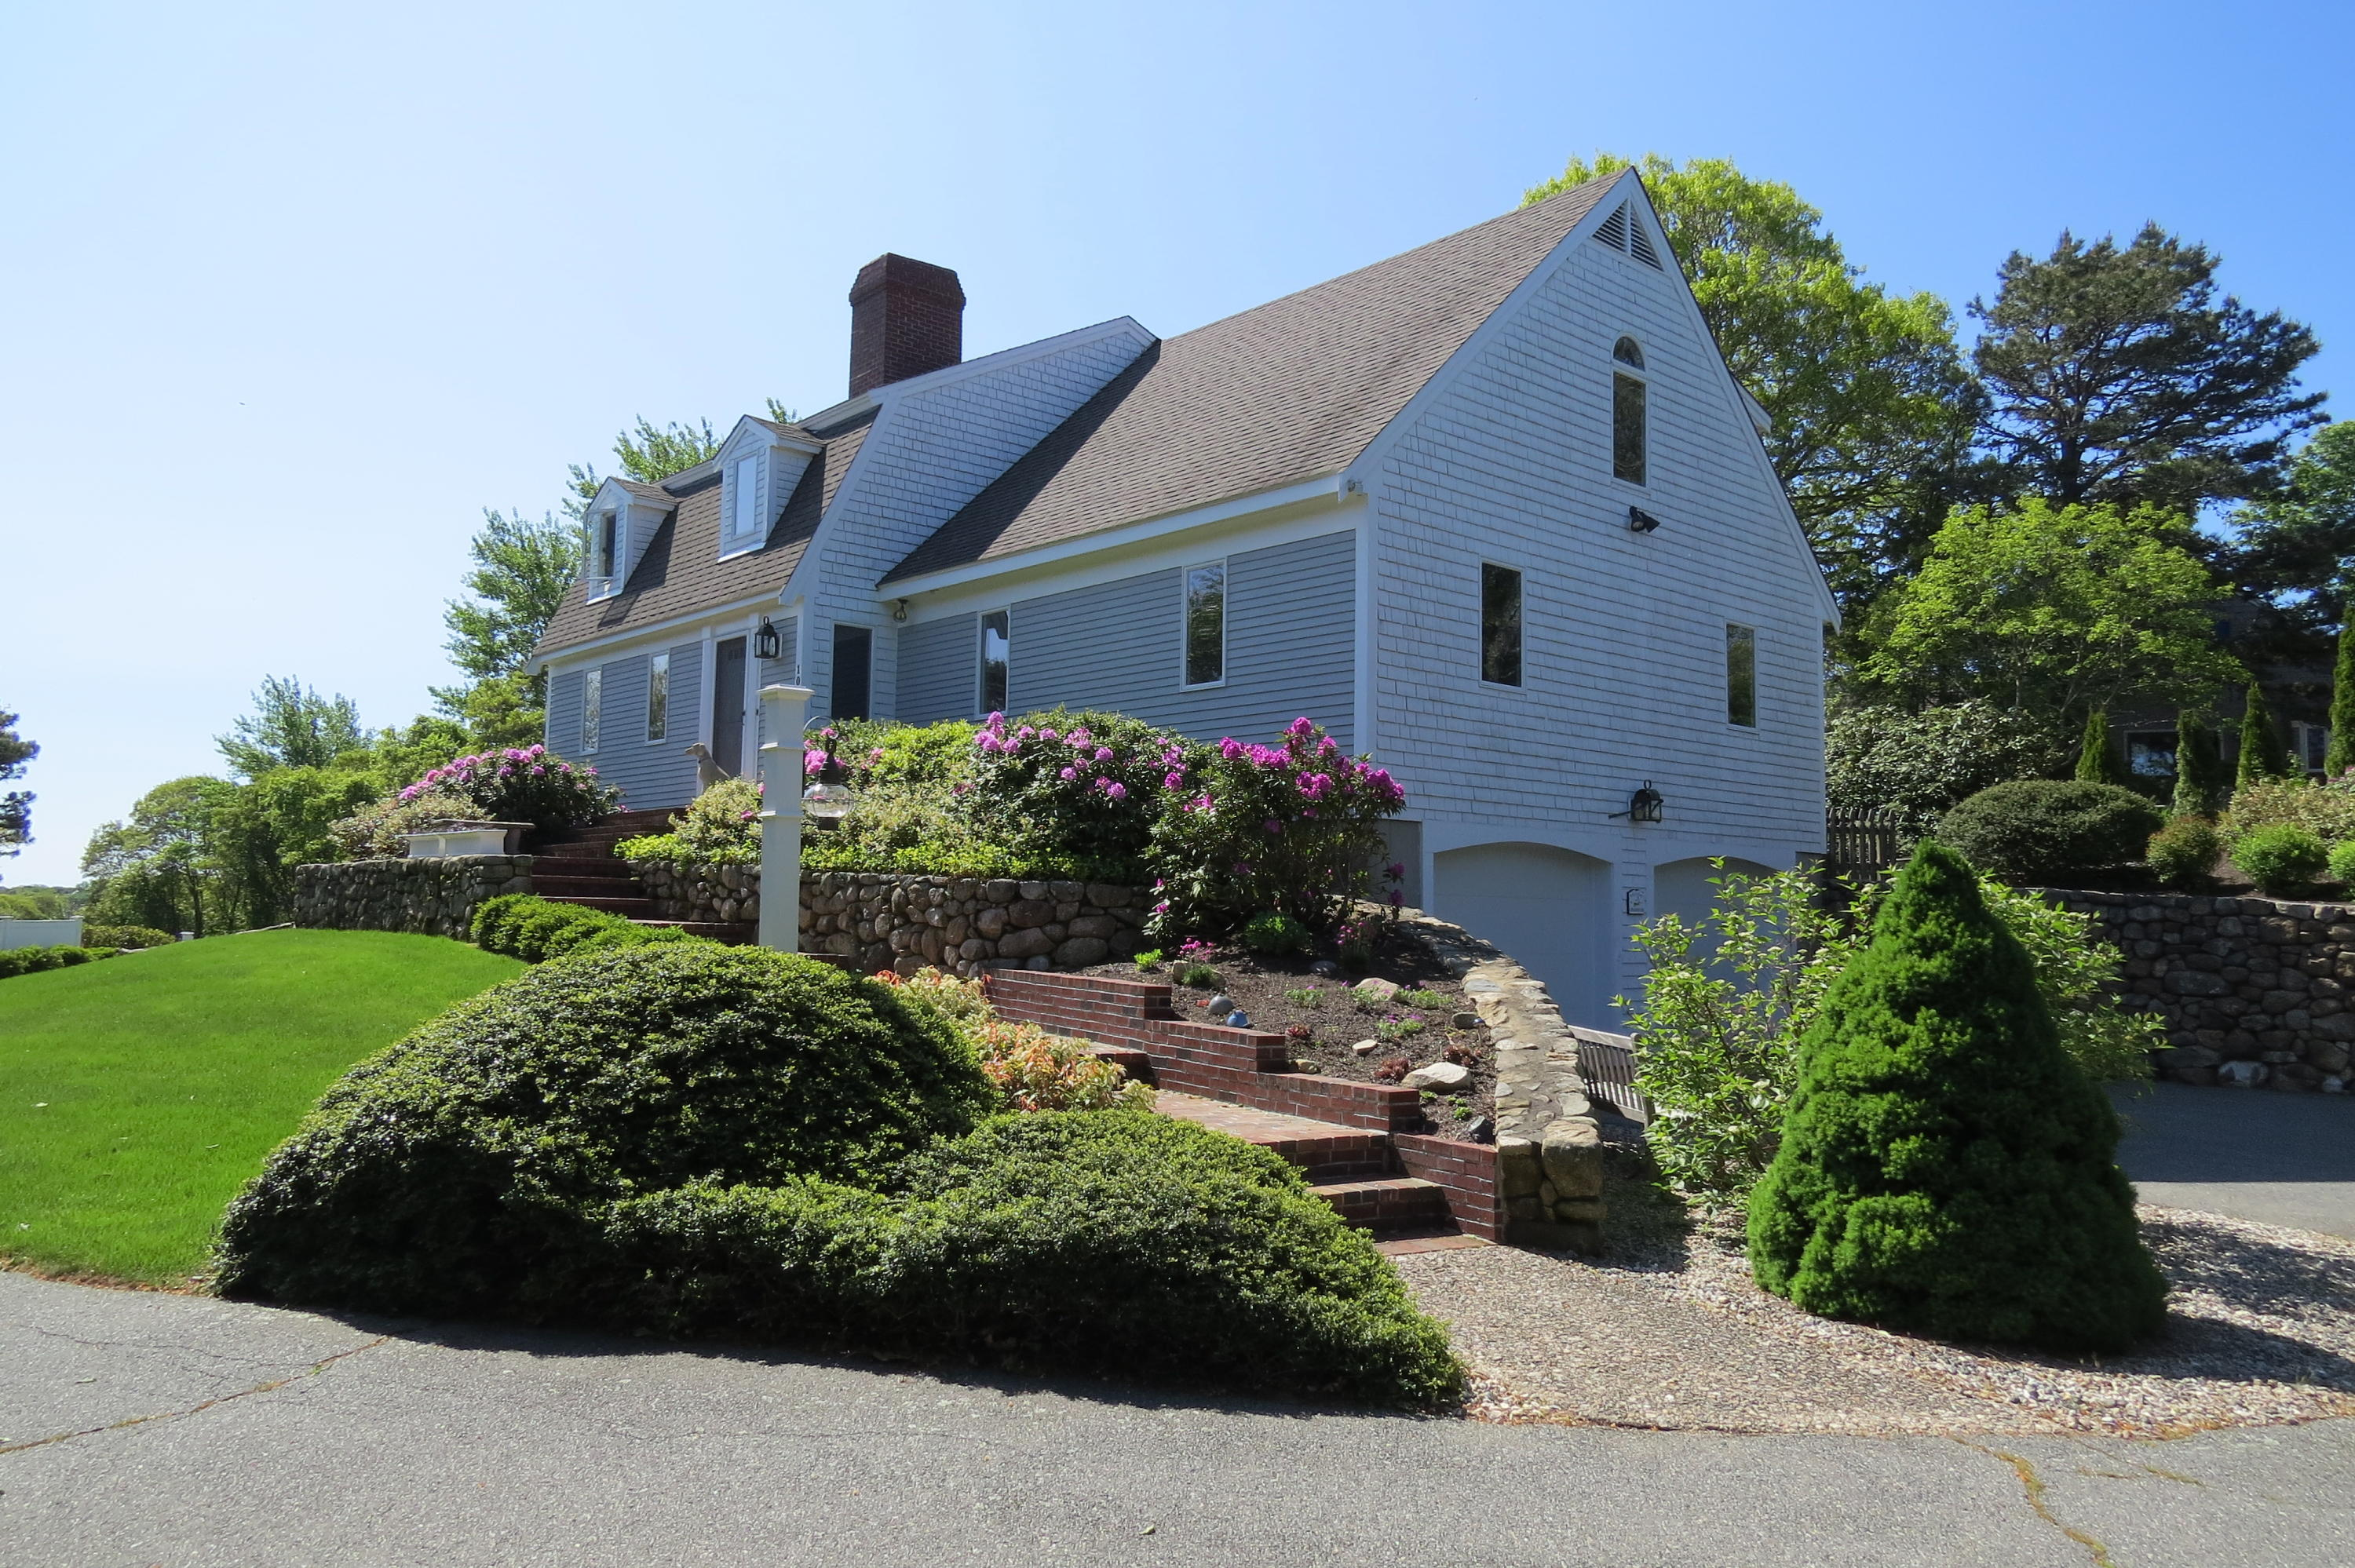 1013 Orleans Road, North Chatham MA, 02650 details